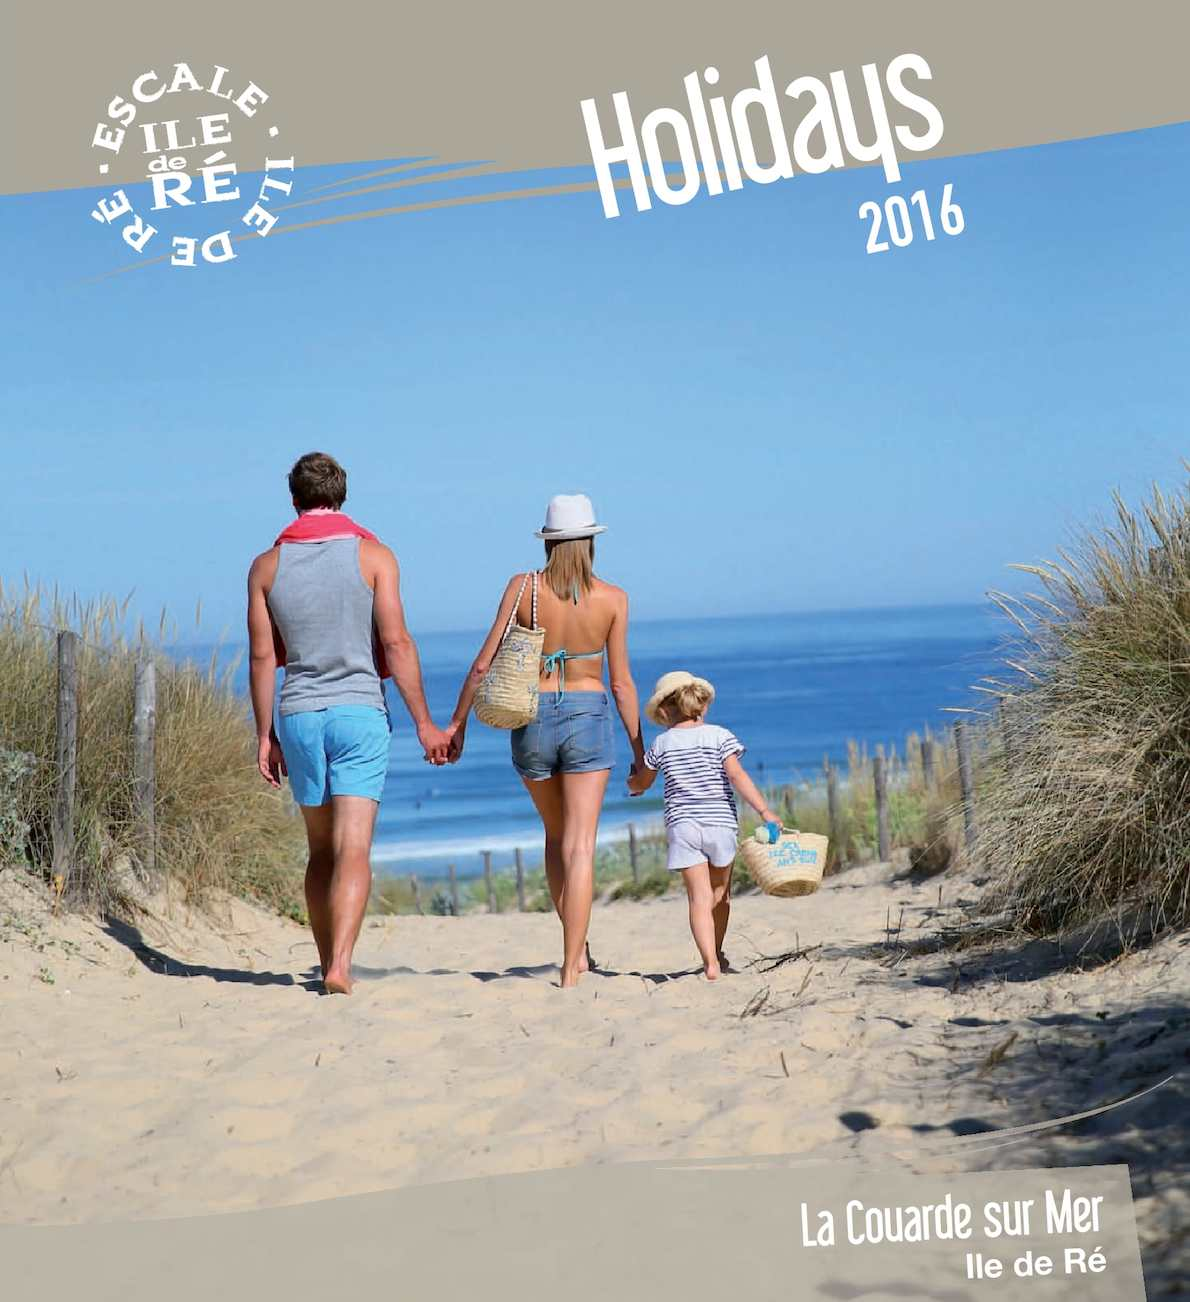 Calaméo Holiday Guide 2016 Ile De Ré